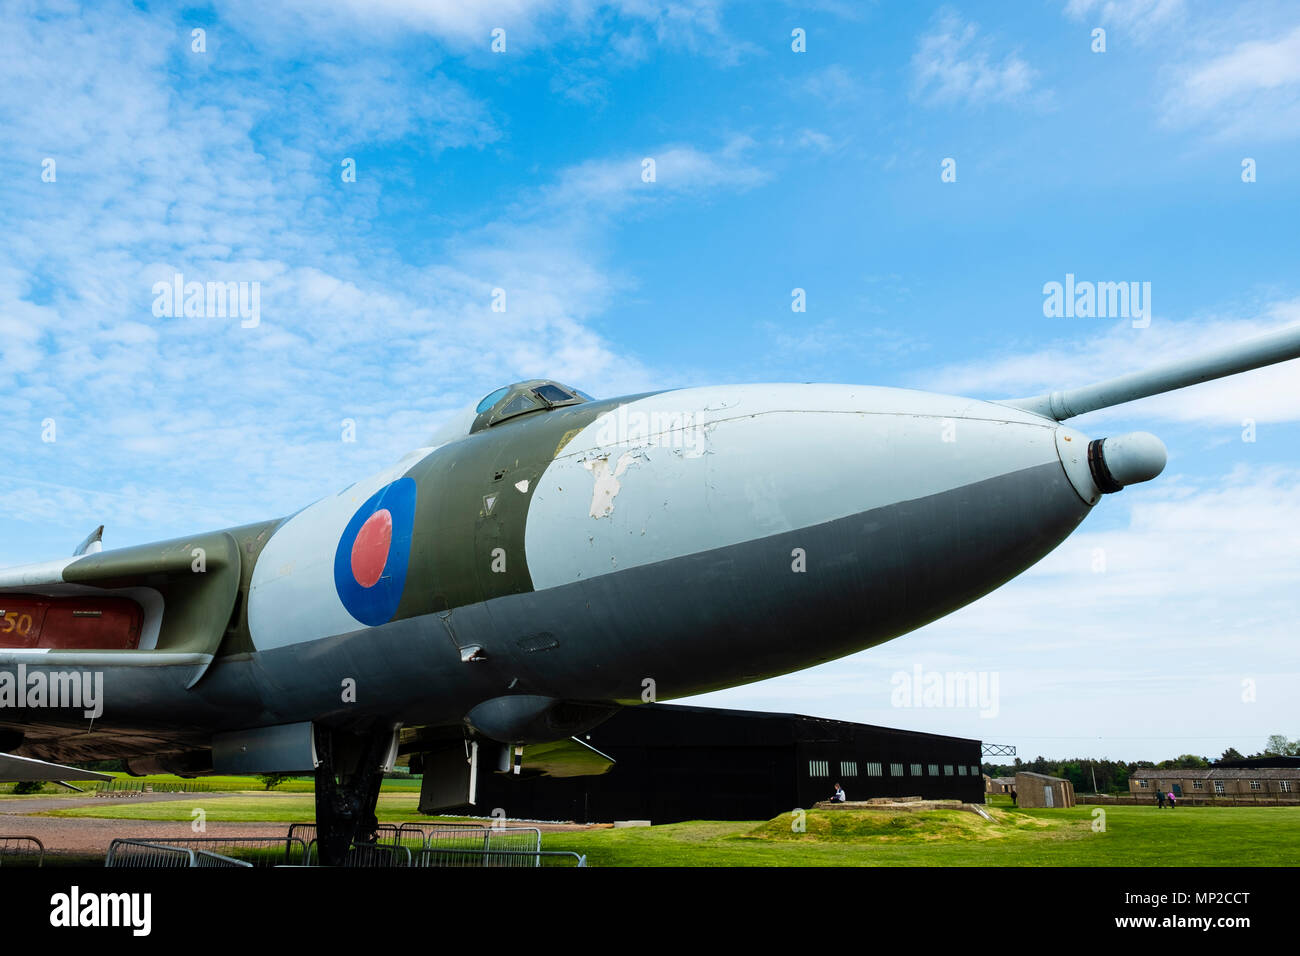 Avro Vulcan B.2A on display at National Museum of Flight at East Fortune Airfield in East Lothian, Scotland, United Kingdom - Stock Image